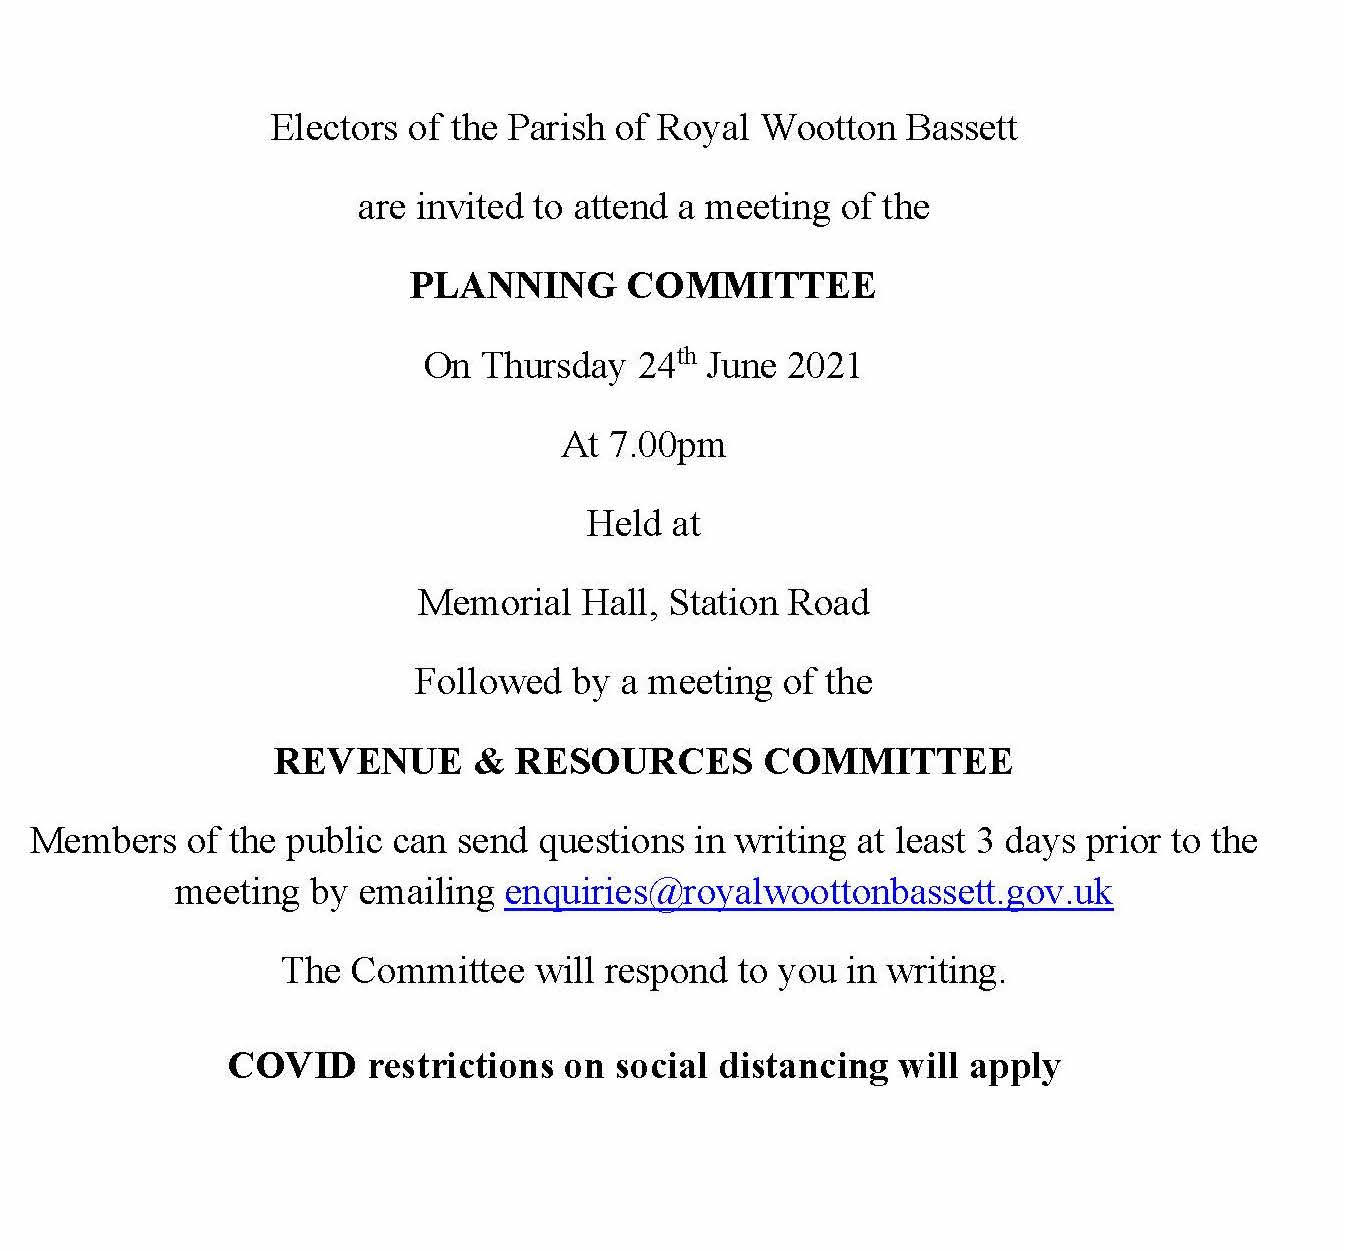 Planning and Revenue and Resources meeting on Thursday 24th June 2021